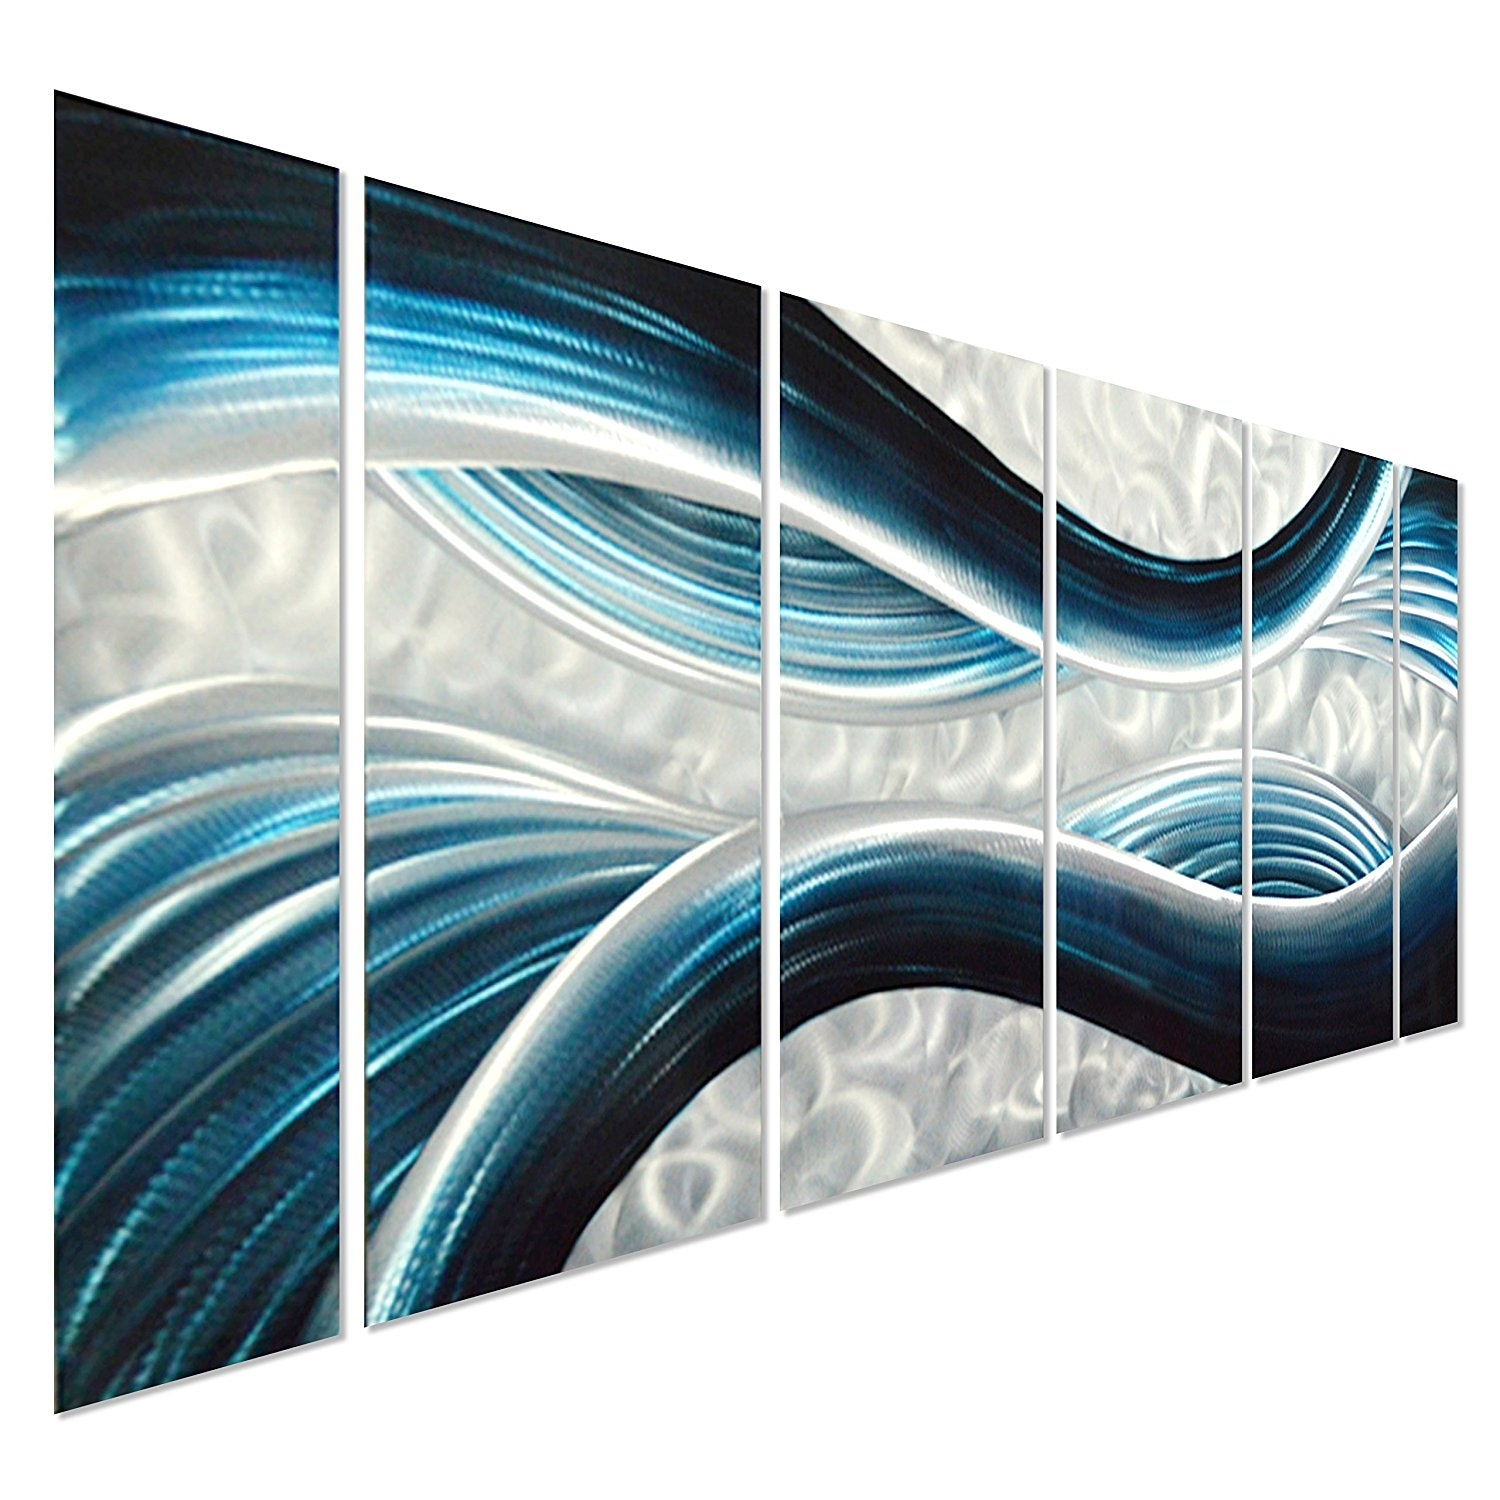 Metal Wall Art Panels Australia A Decal Amazon Blue Desire Large In Latest Abstract Metal Wall Art Australia (View 8 of 20)